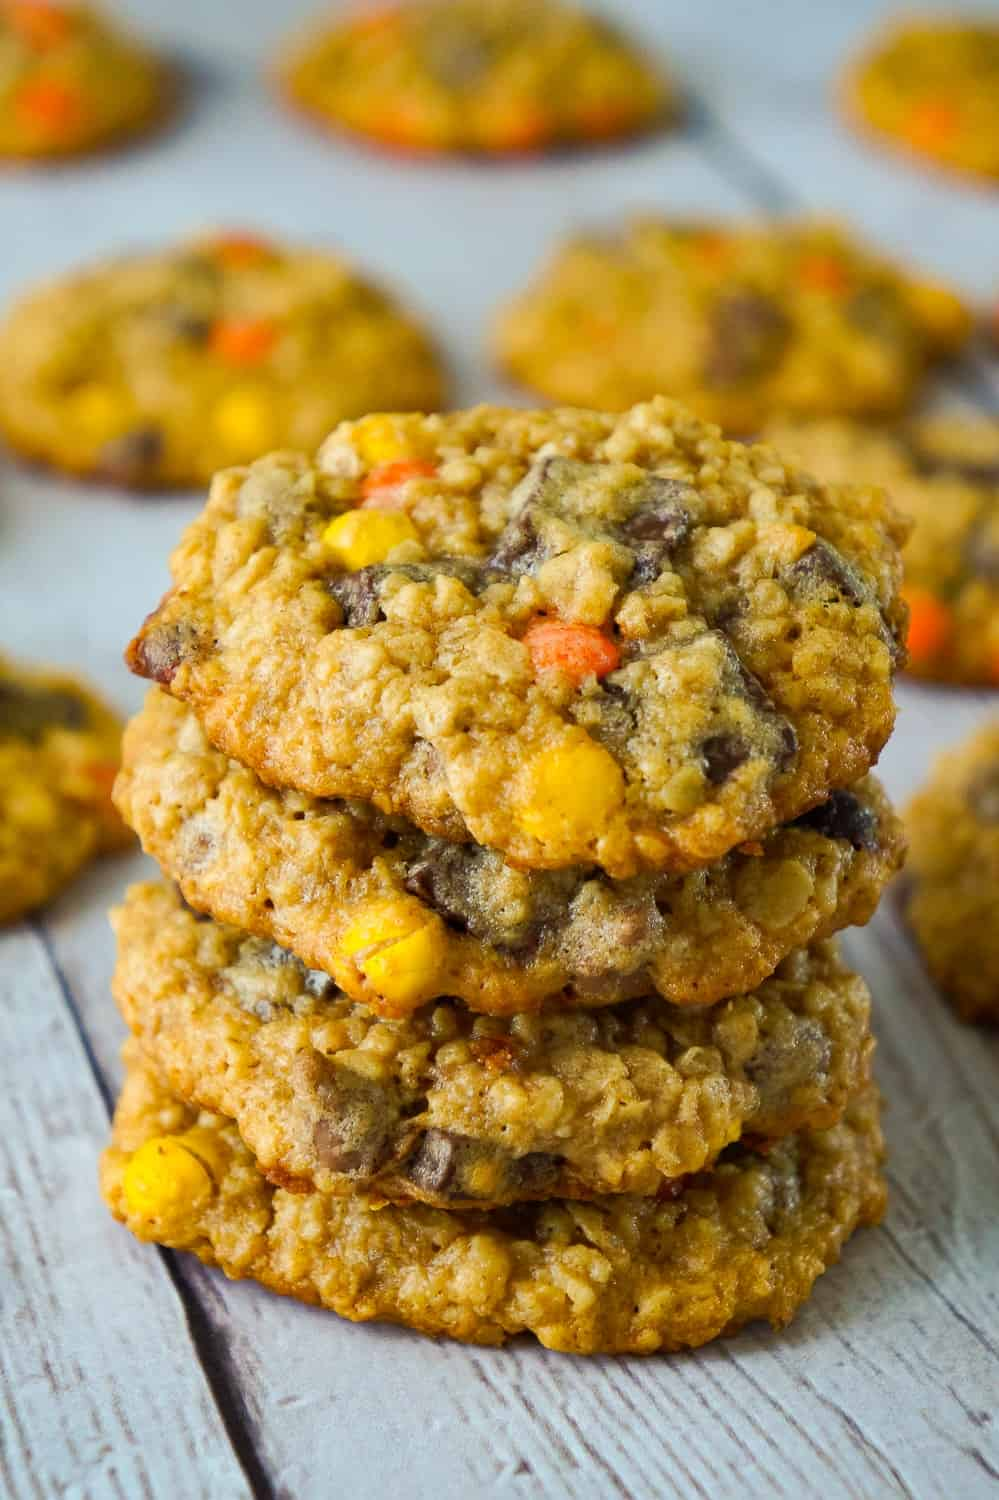 Peanut Butter Oatmeal Cookies with Chocolate Chunks are the perfect dessert recipe for peanut butter lovers. These oatmeal cookies are loaded with mini Reese's Pieces, milk chocolate chips and chocolate chunks.